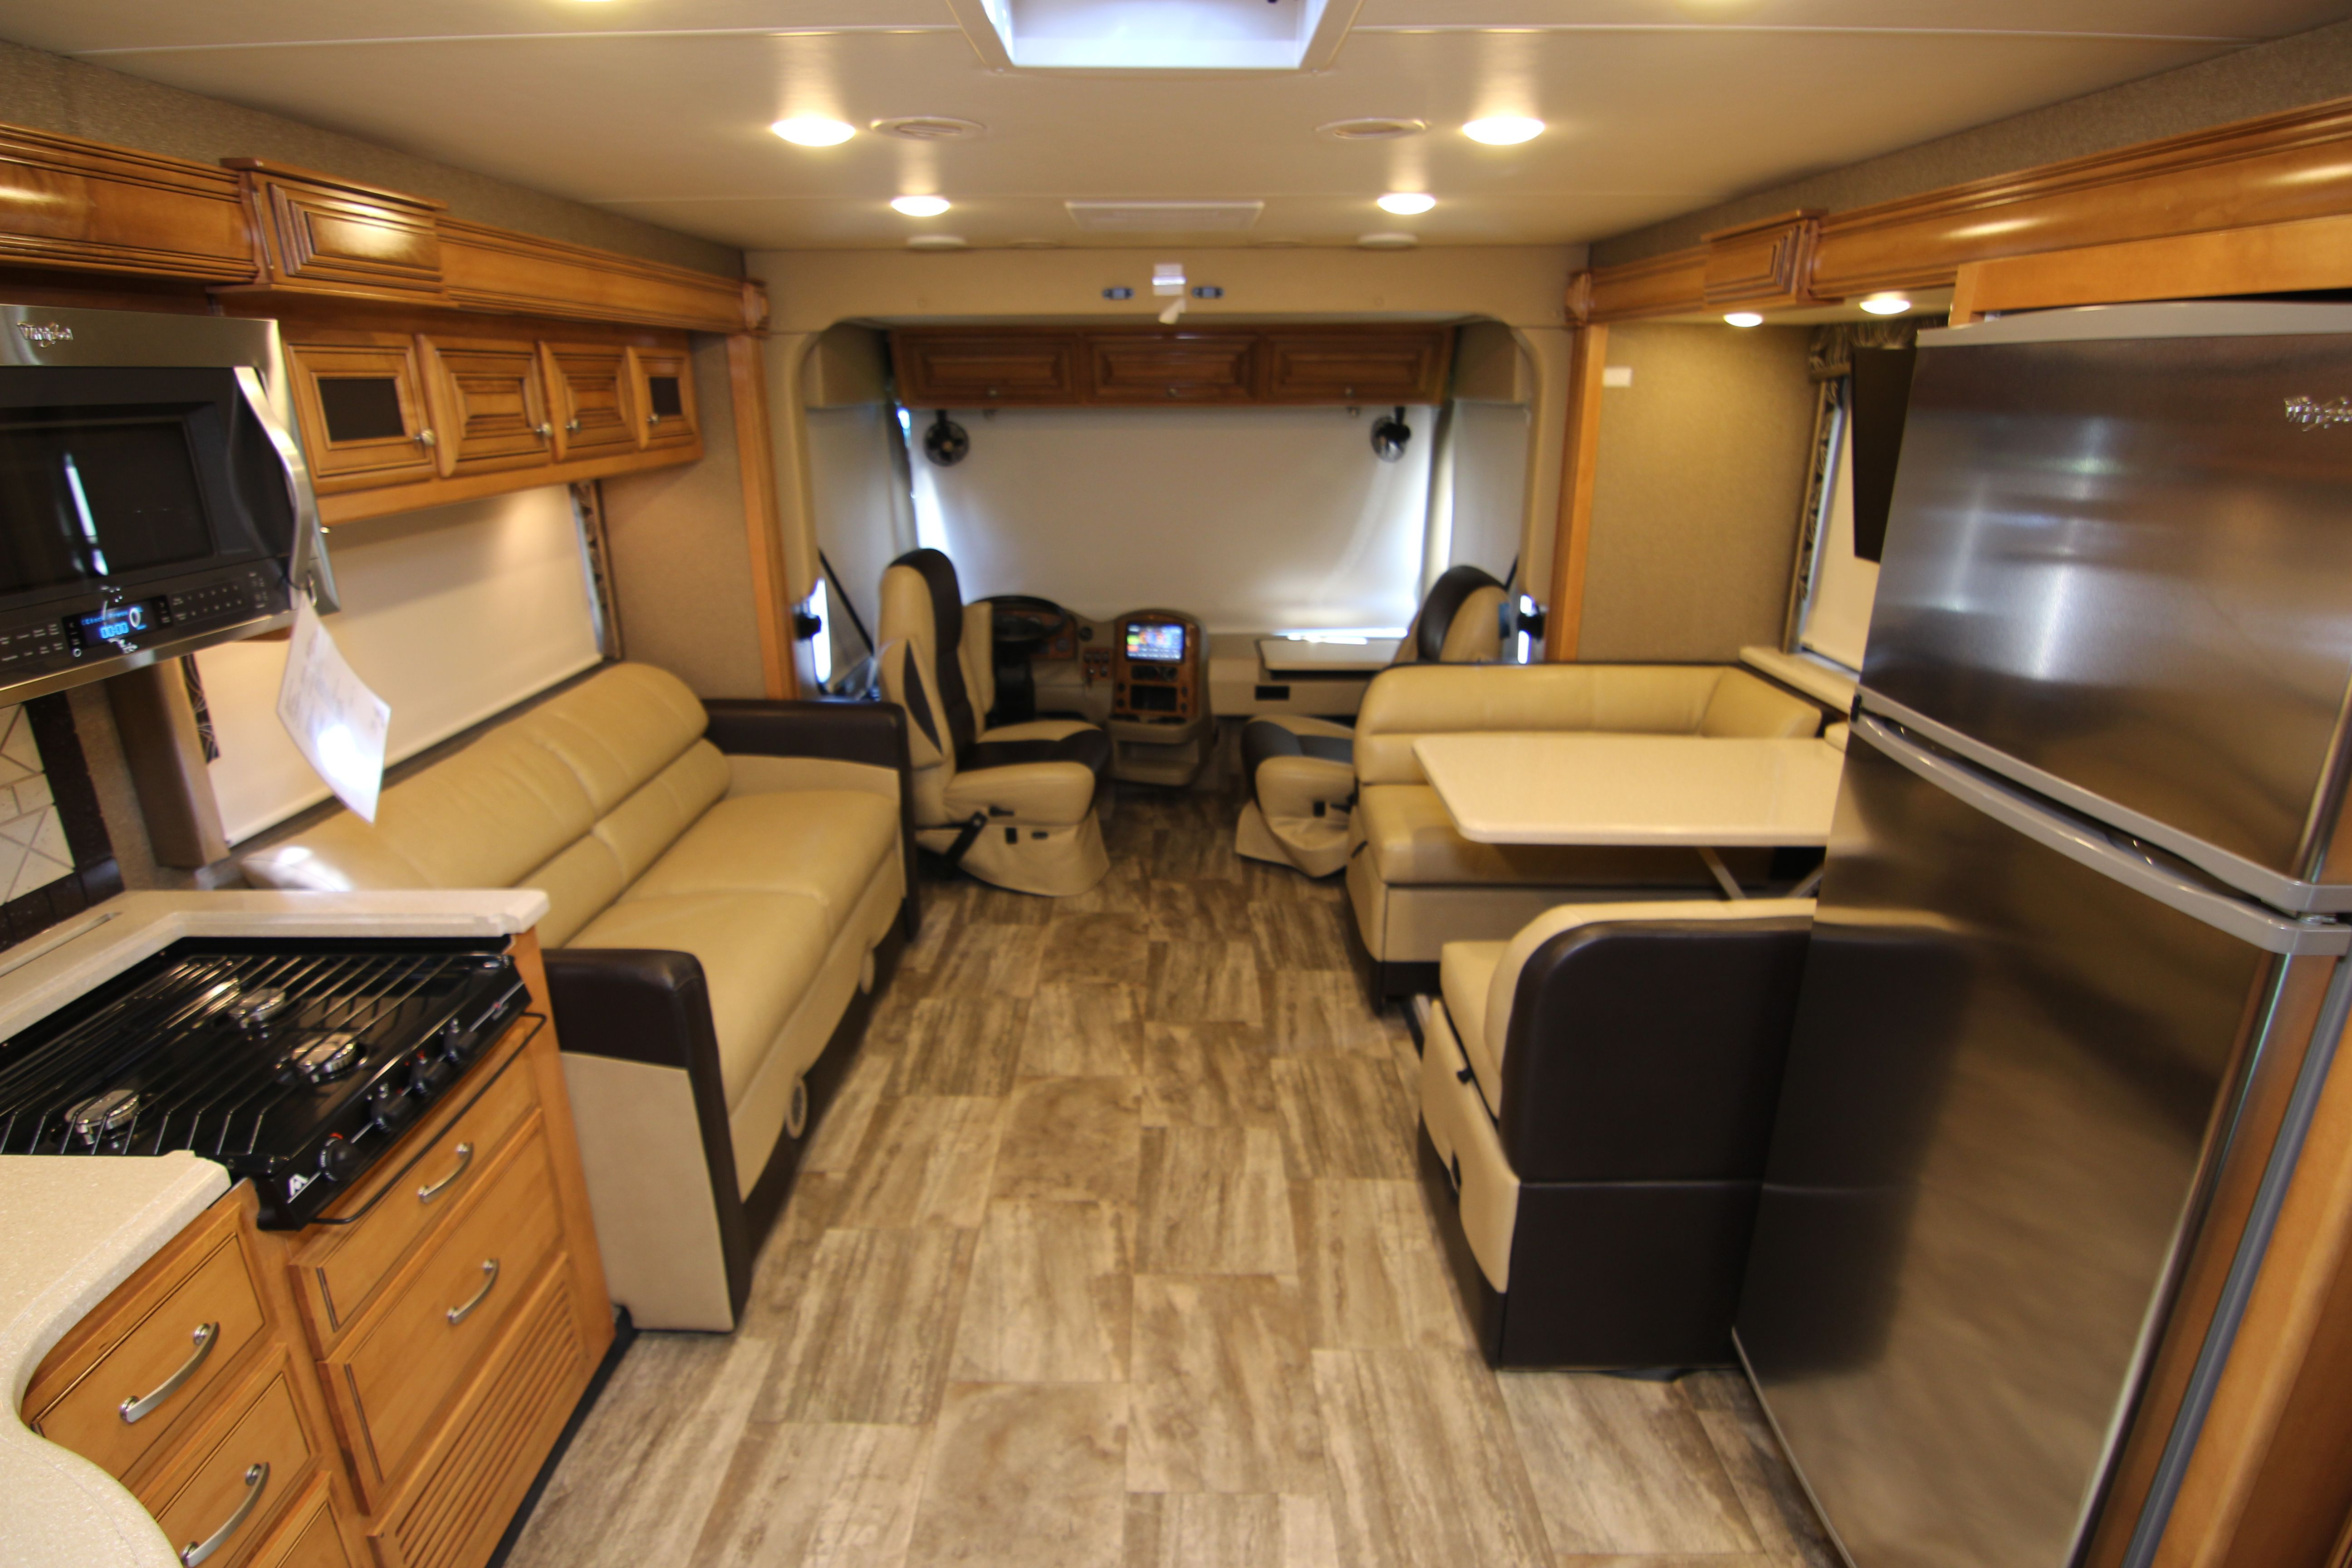 2016 Thor Palazzo Luxury Motorhome from Thor Motor Coach